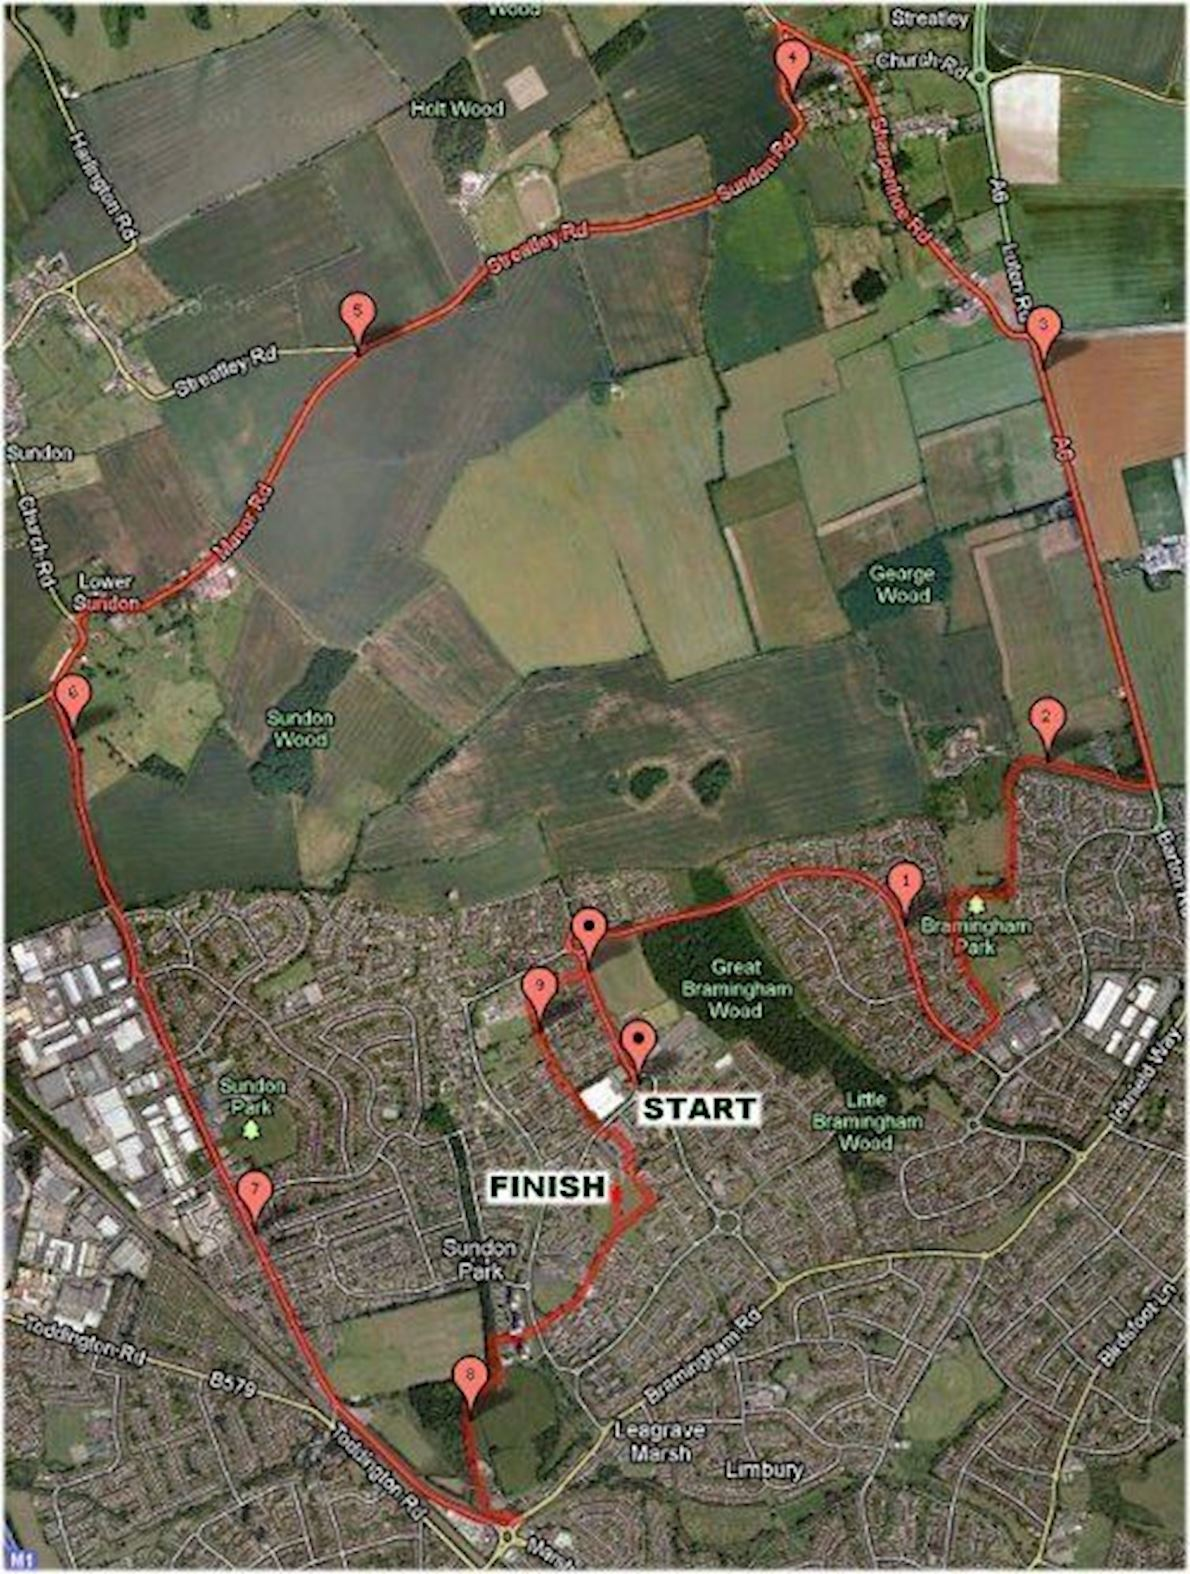 Love Luton Half Marathon Route Map